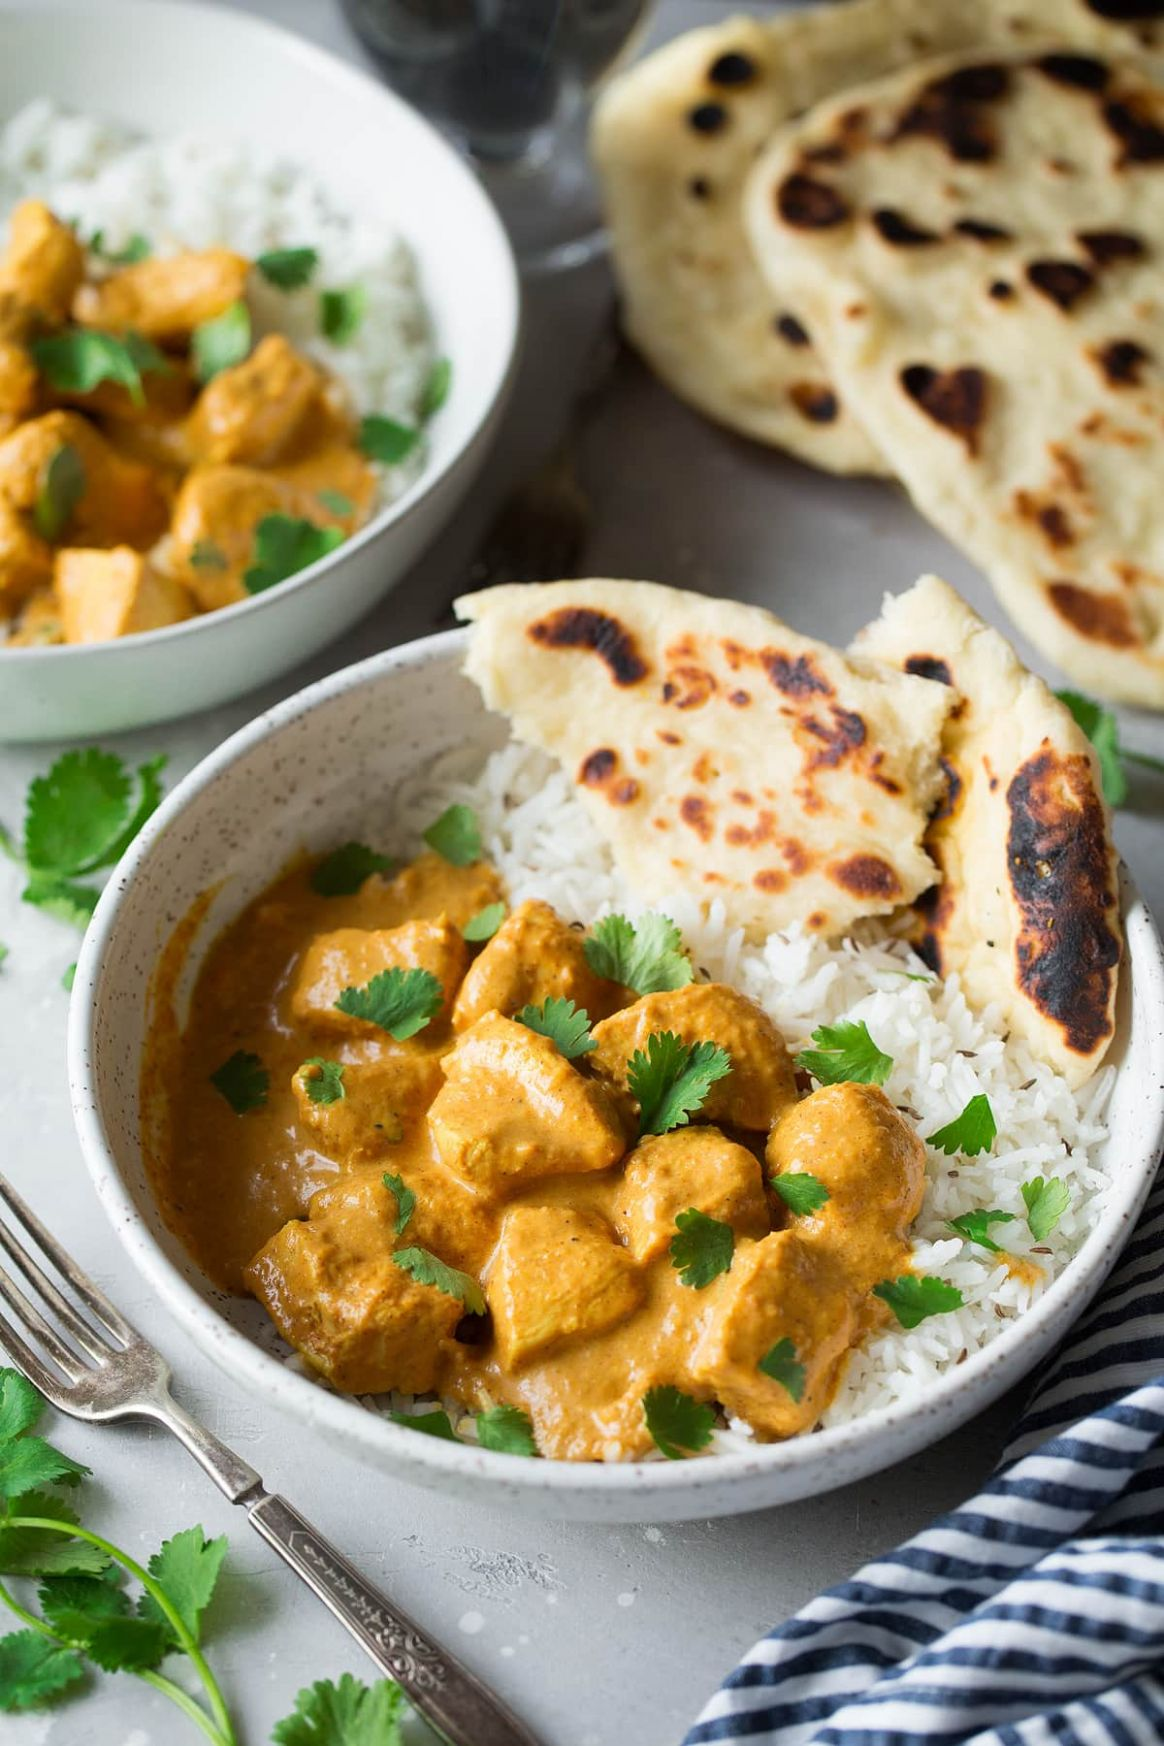 Chicken Curry Flavorful Easy Recipe - Cooking Classy - Recipes Chicken Curry